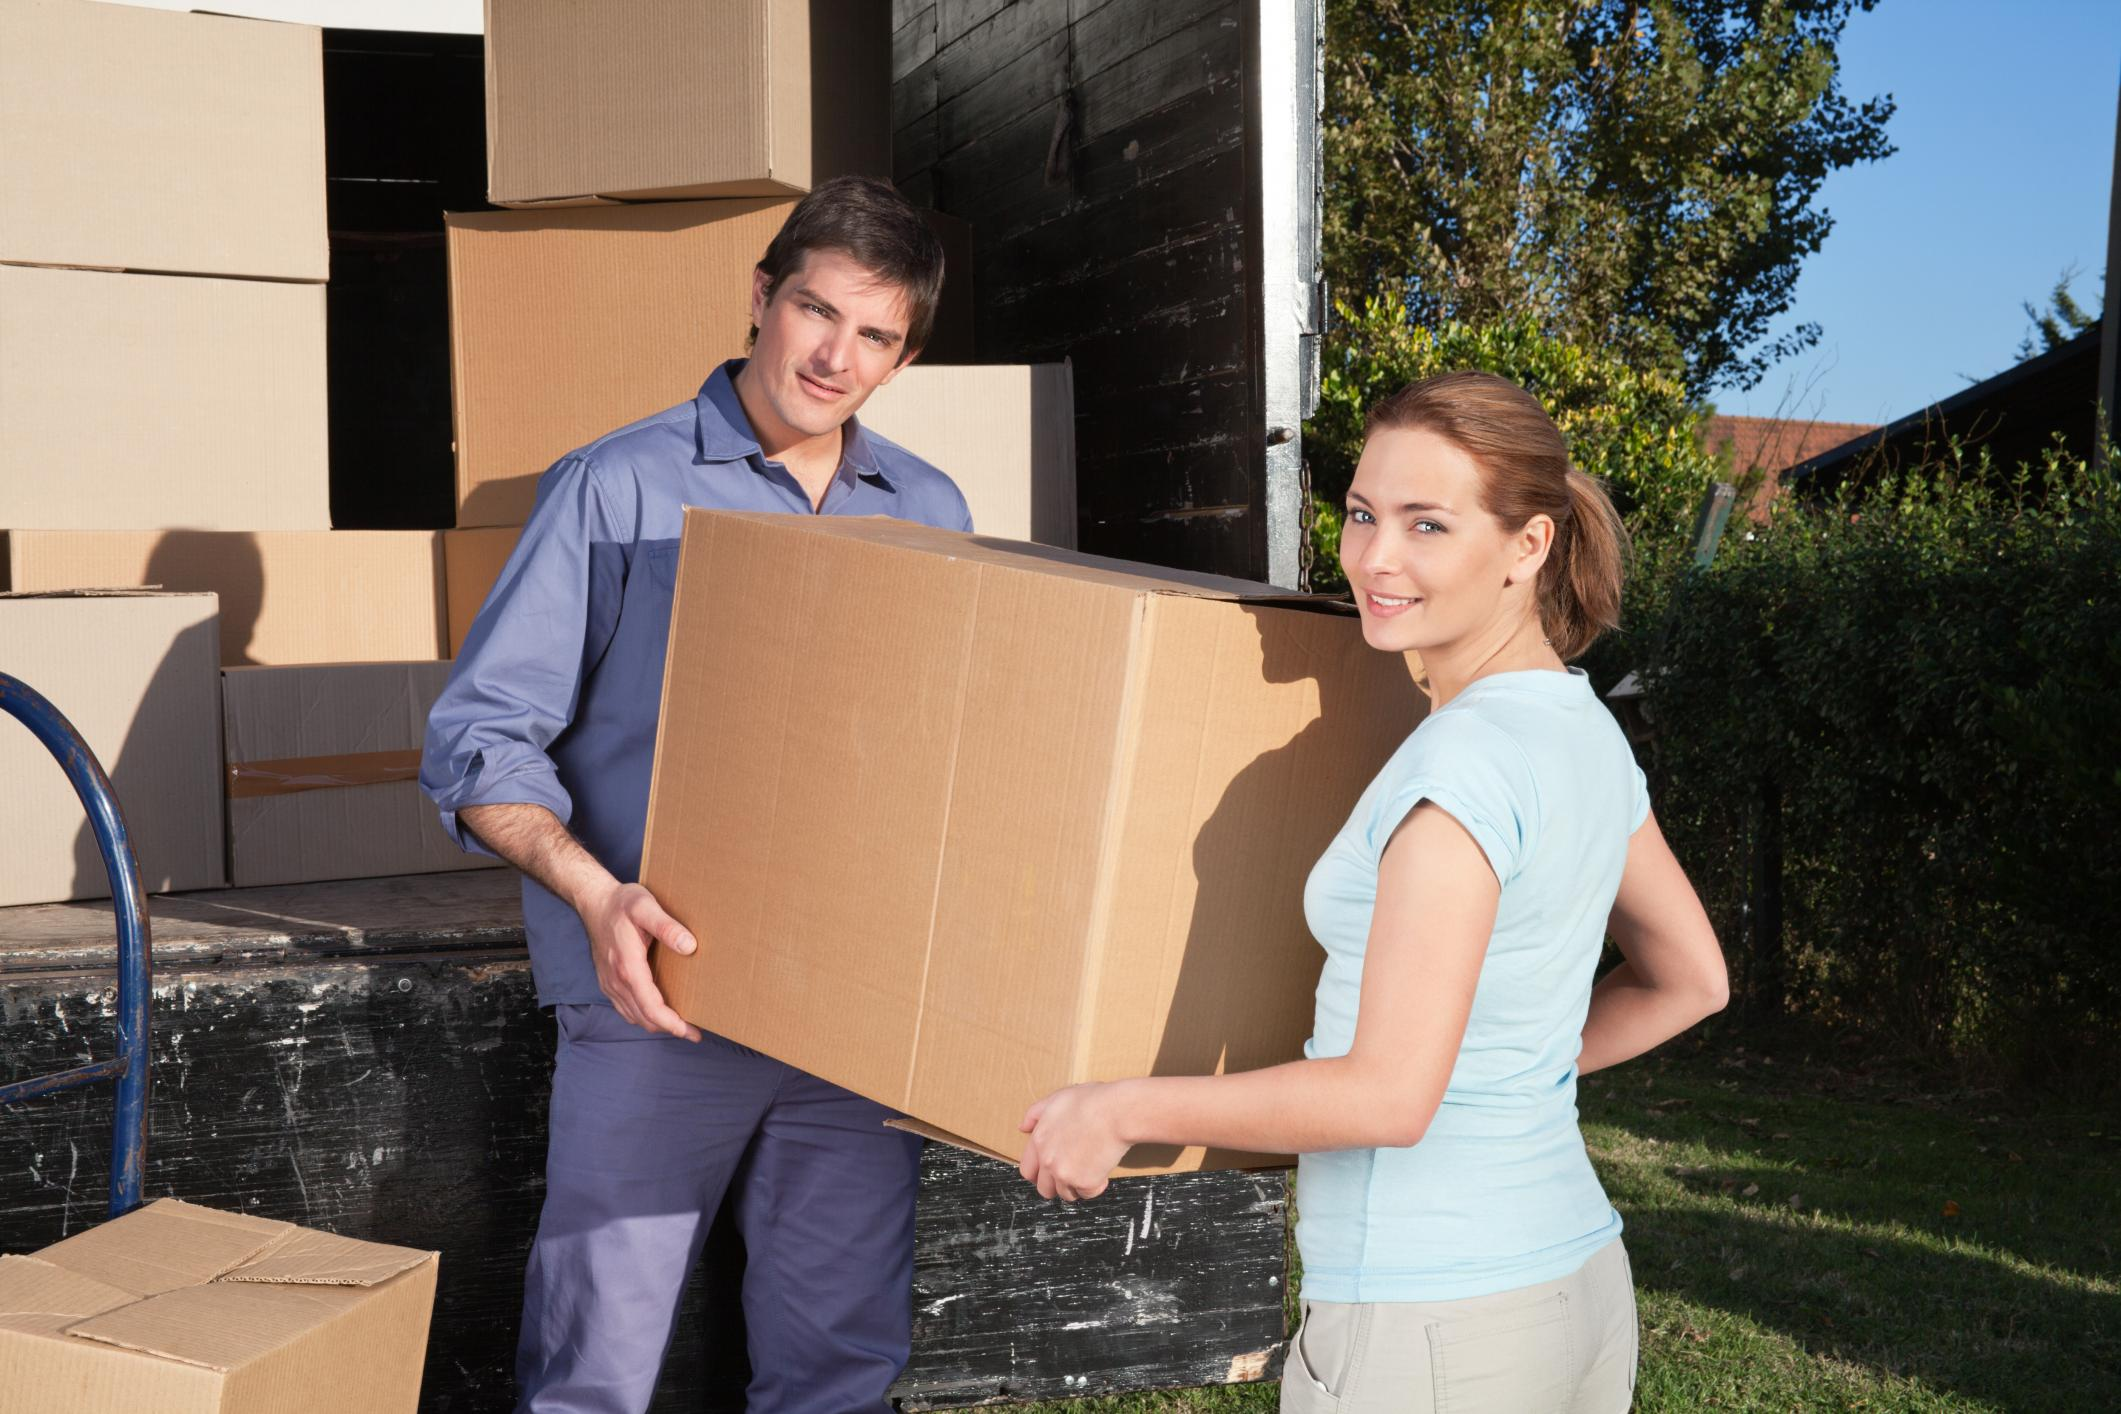 Removing items | interstate removals